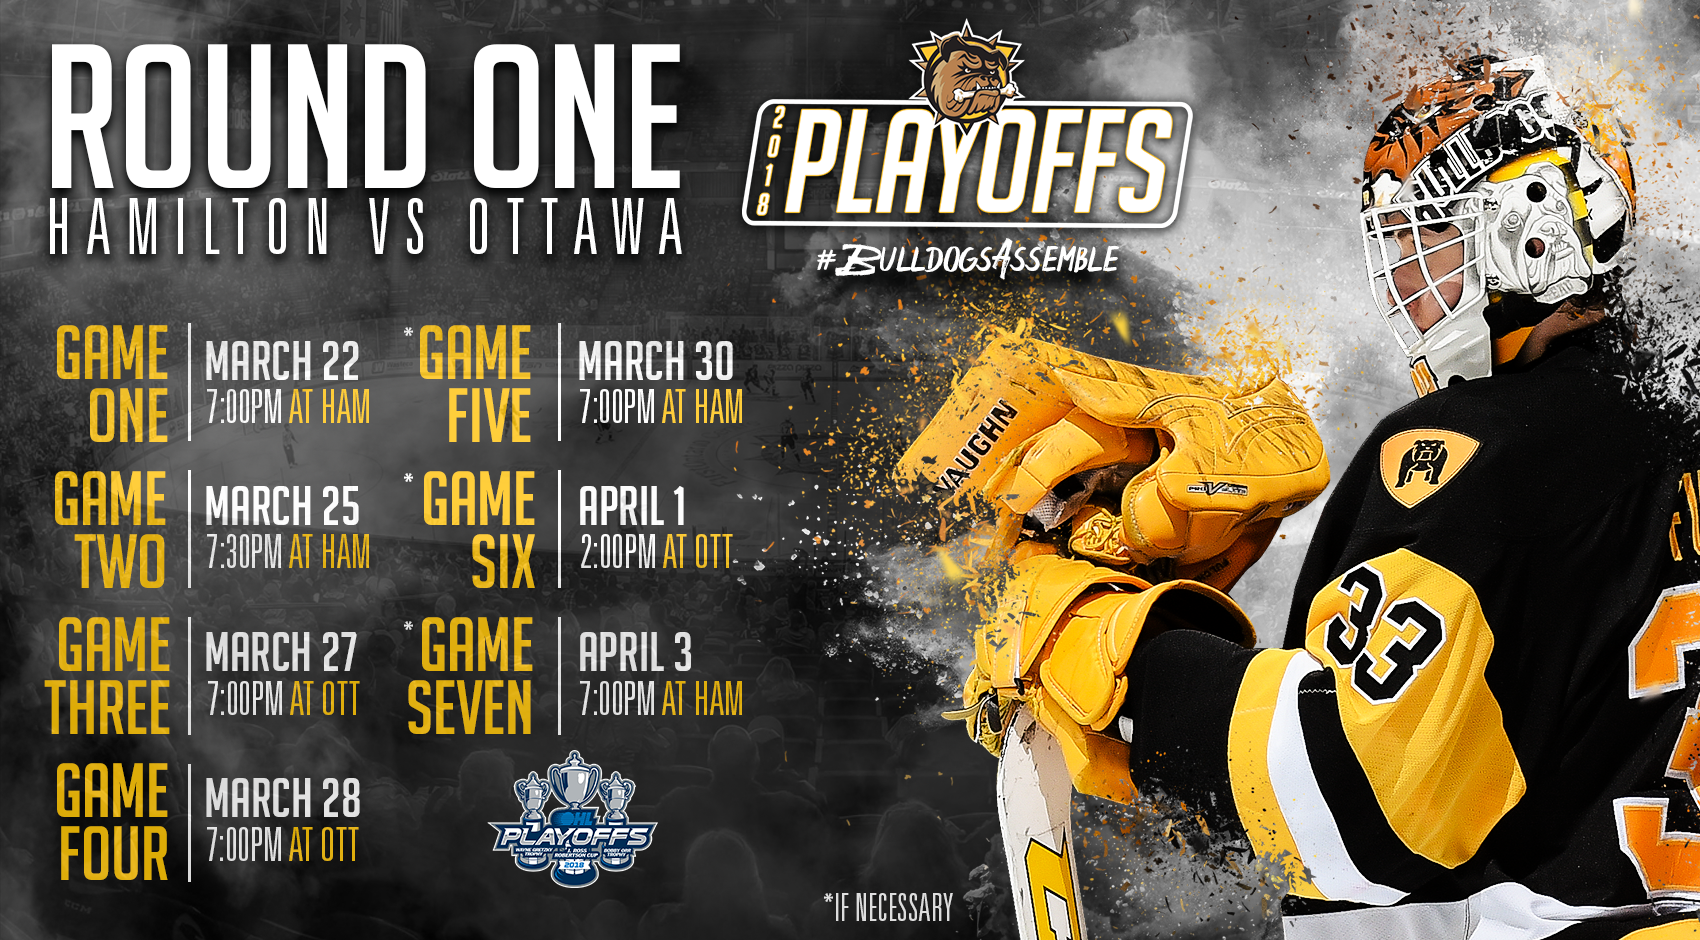 RoundSchedule-Playoffs(OTT) (1)